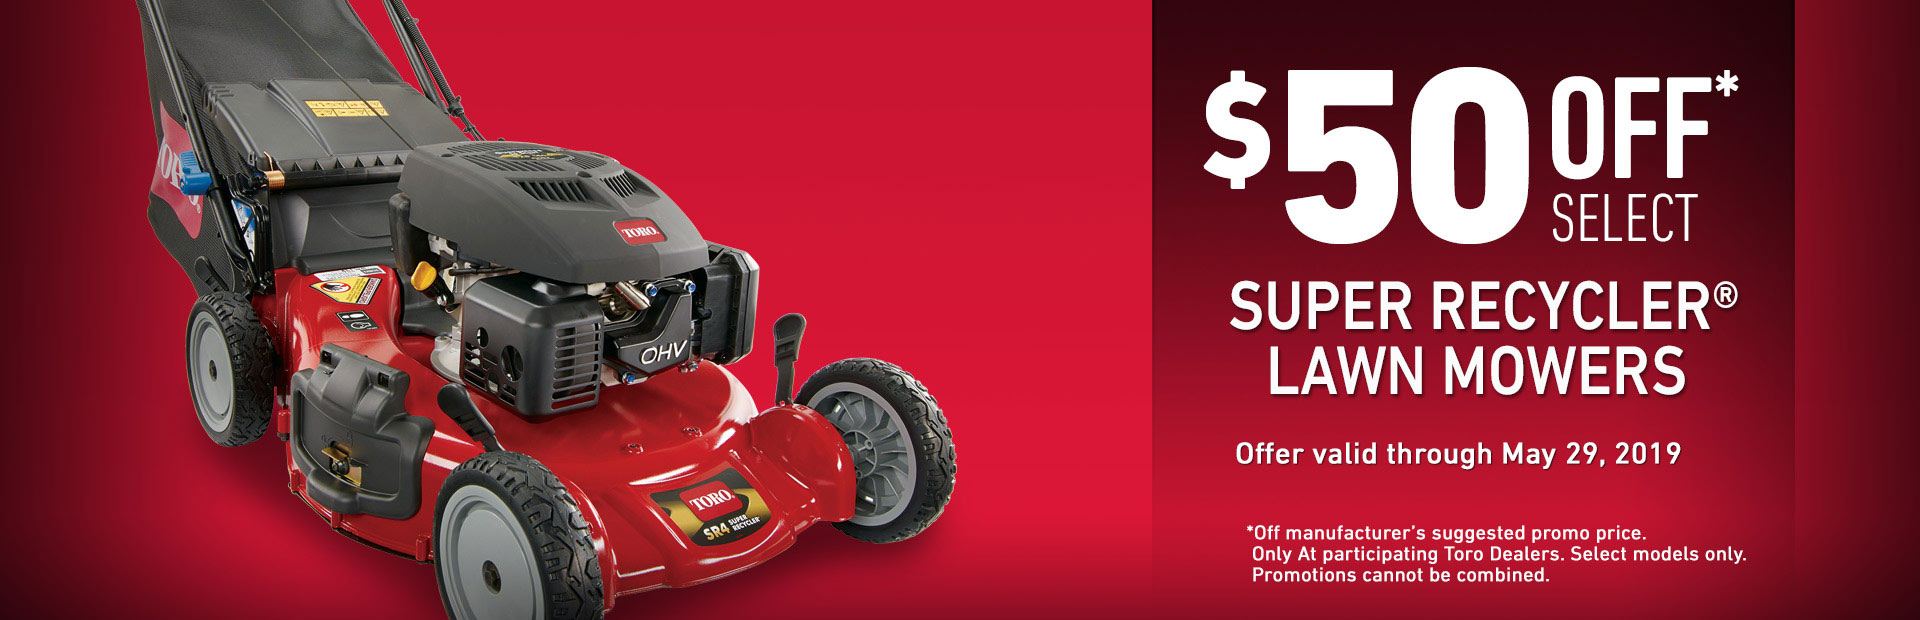 50 Off Select Super Recycler Mowers